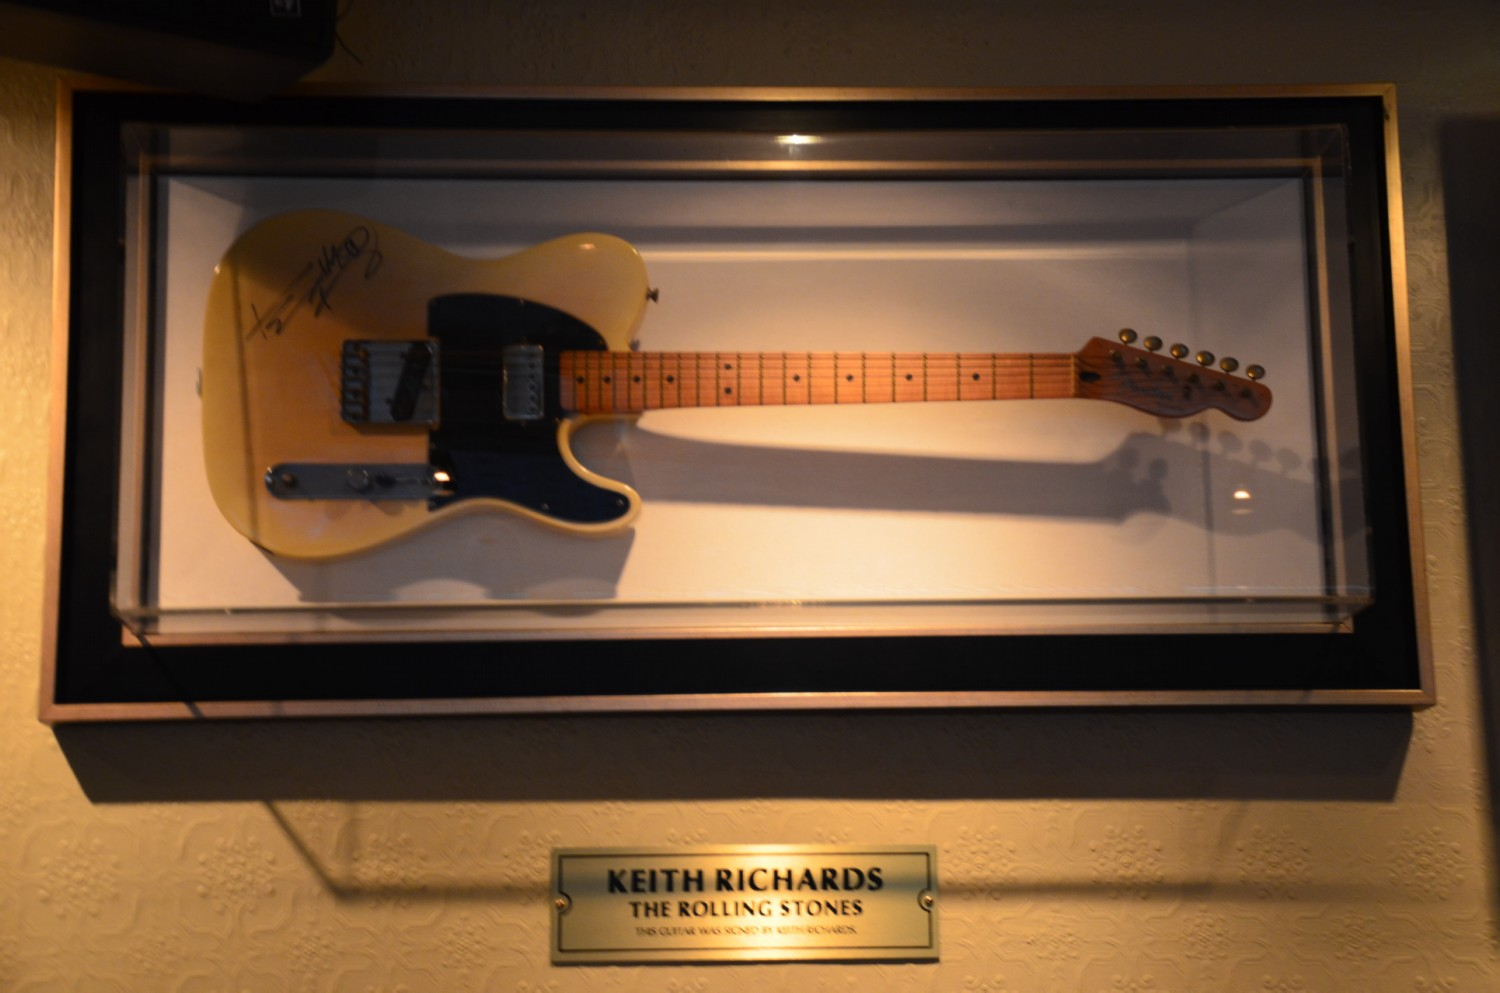 Keith Richards gitarja